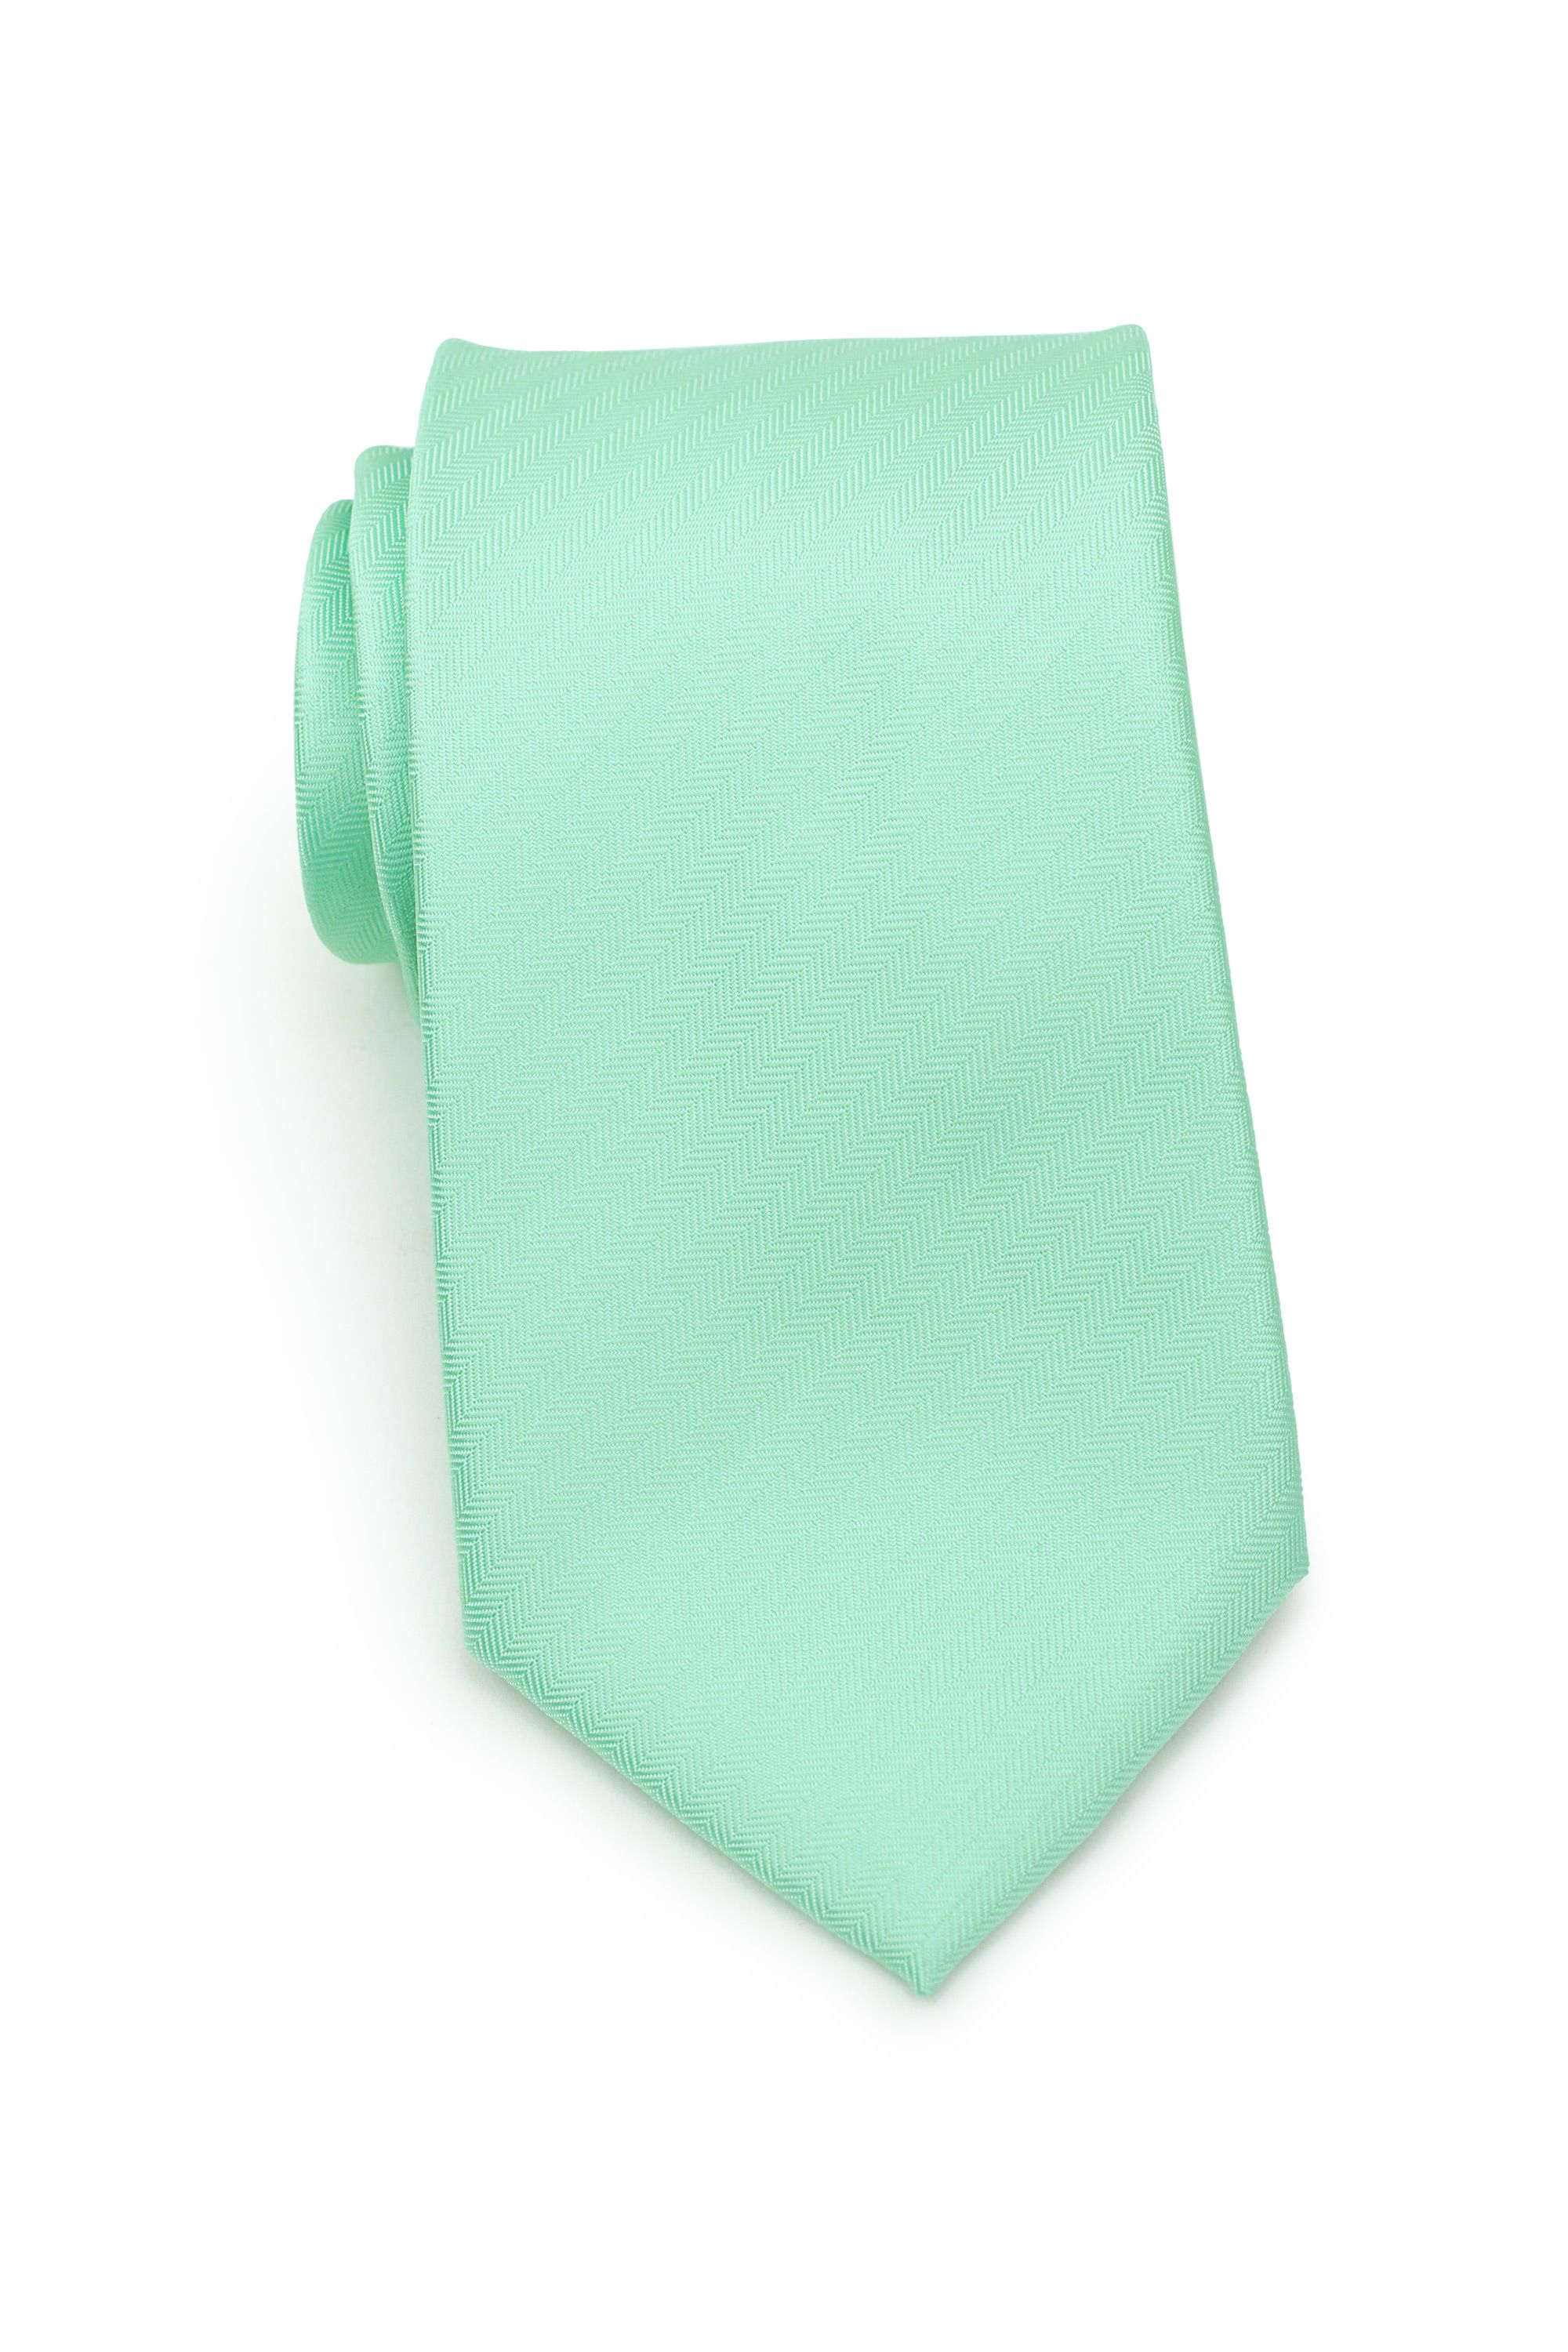 New men/'s polyester woven neck tie mint green tone on tone geomatric pattern